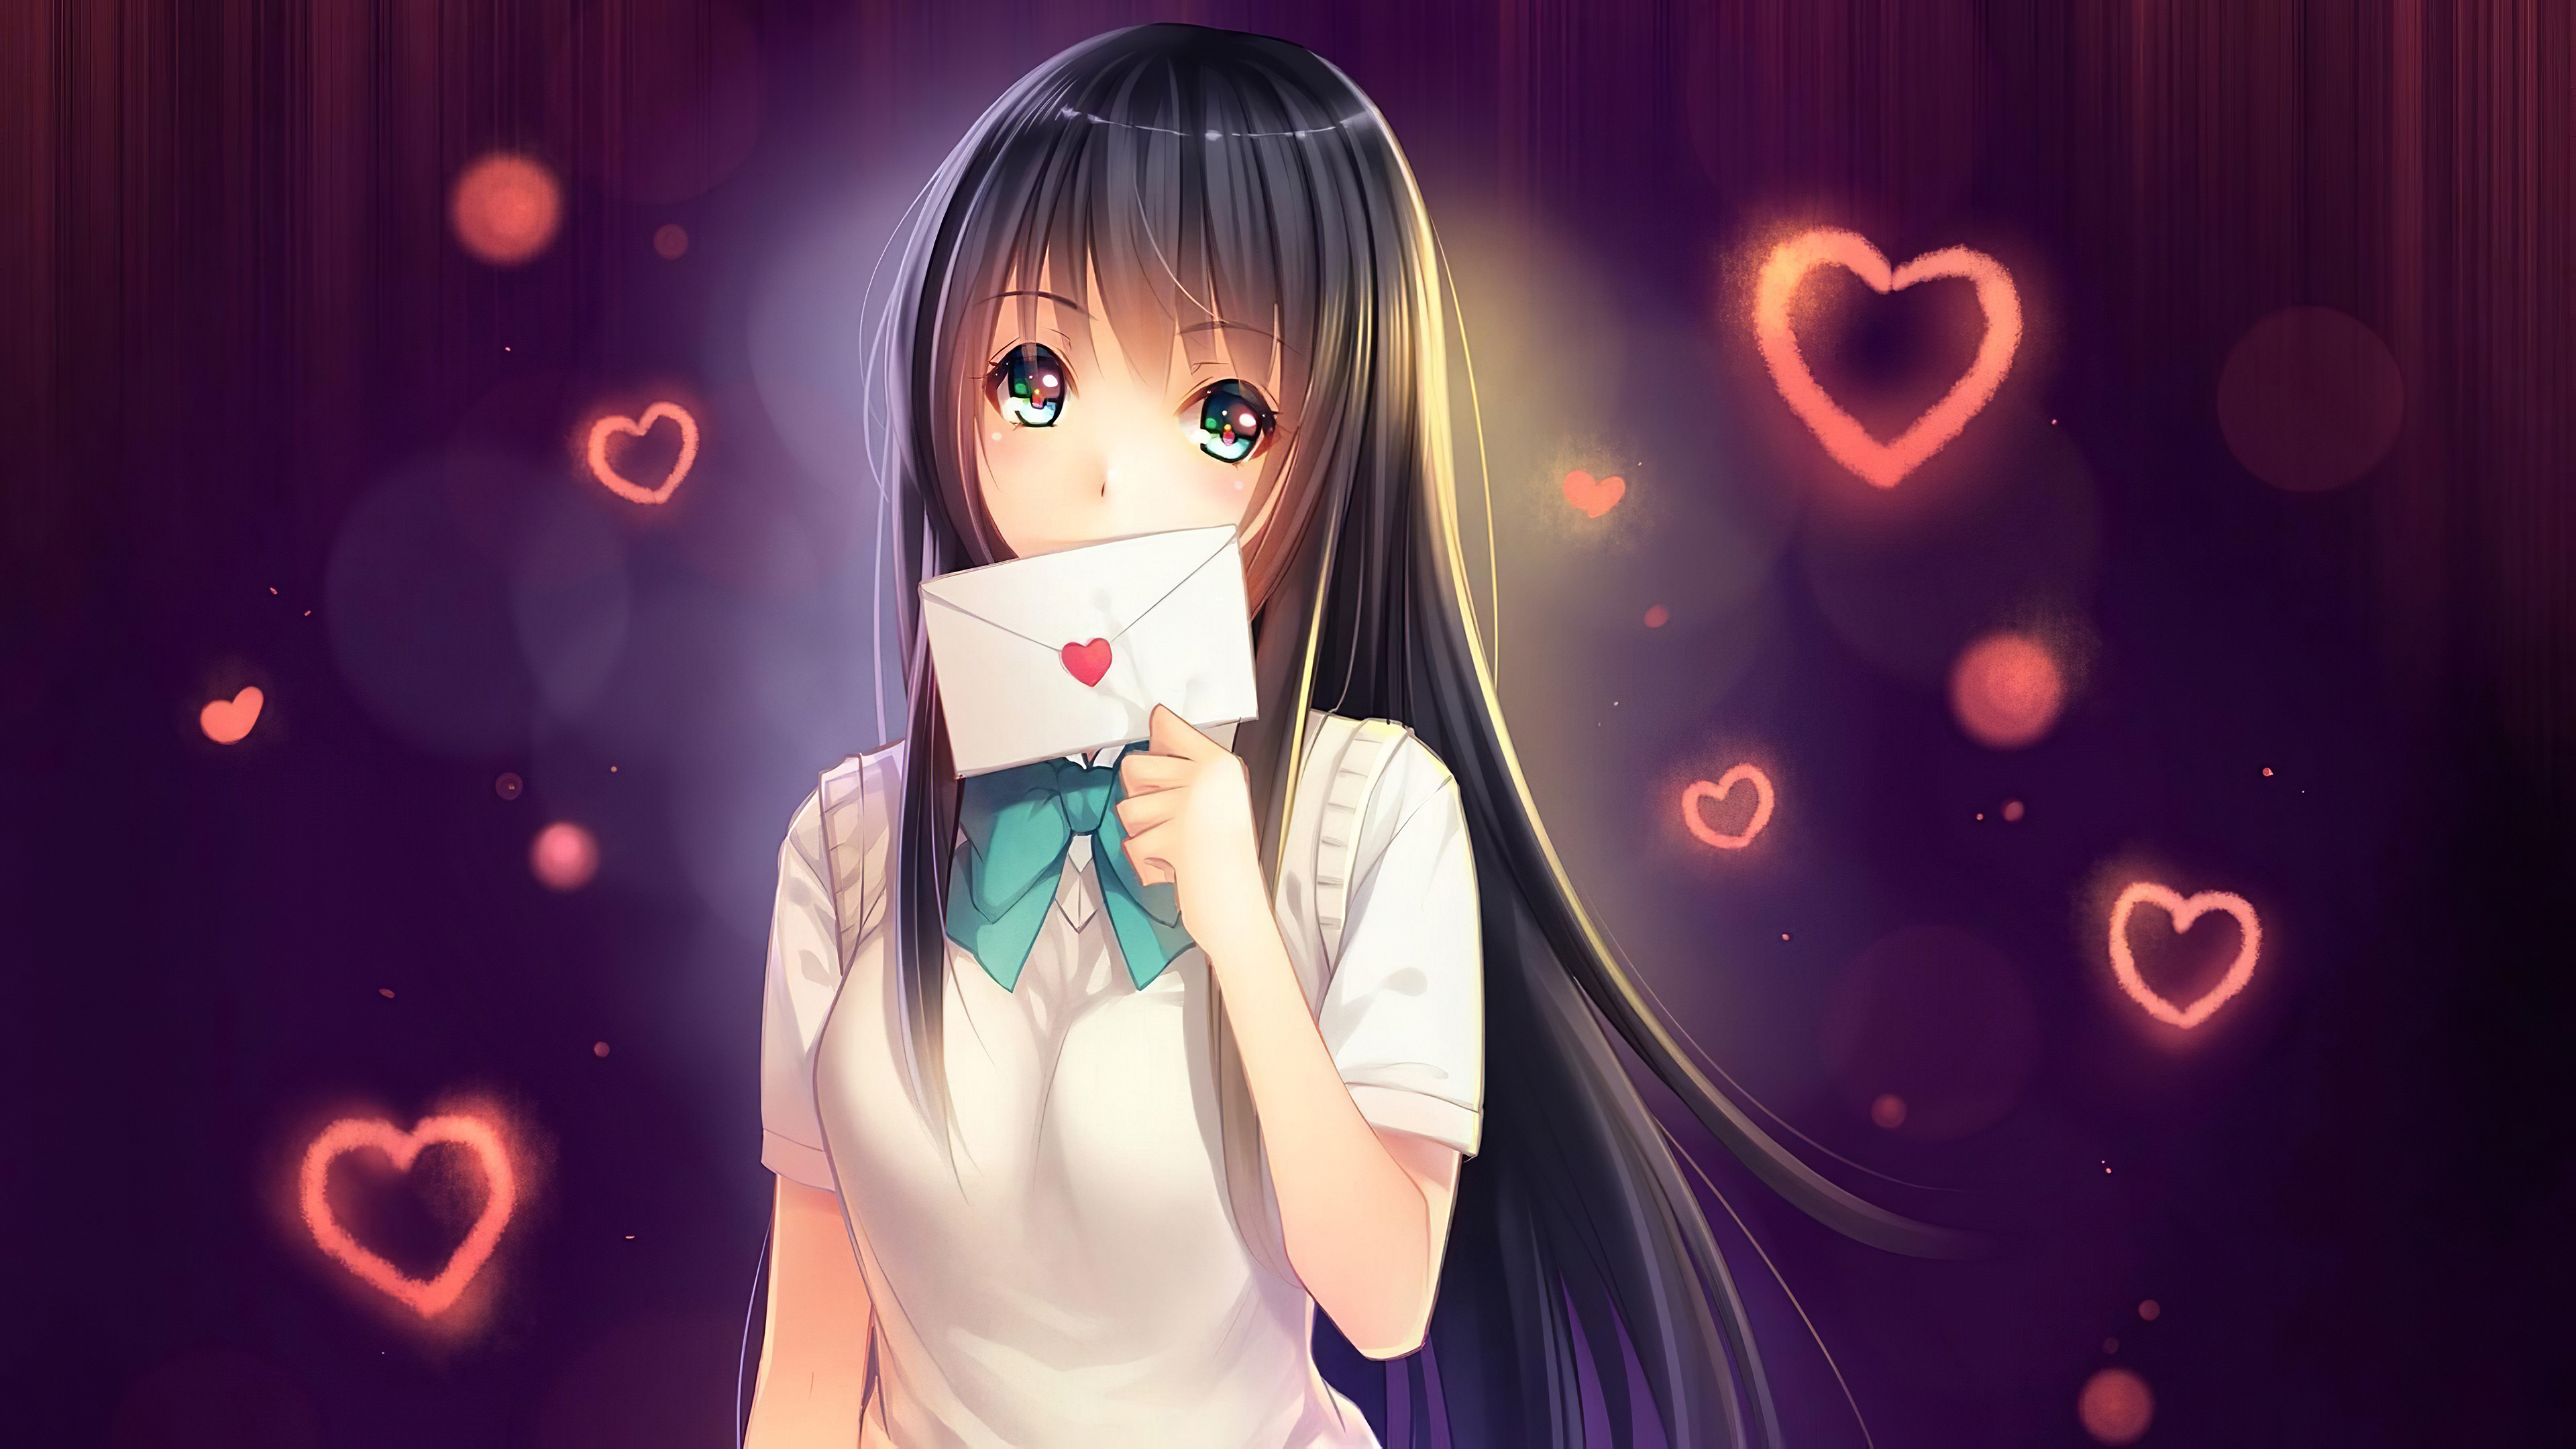 Anime Girl In Love With Love Letter, HD Anime, 8k Wallpapers